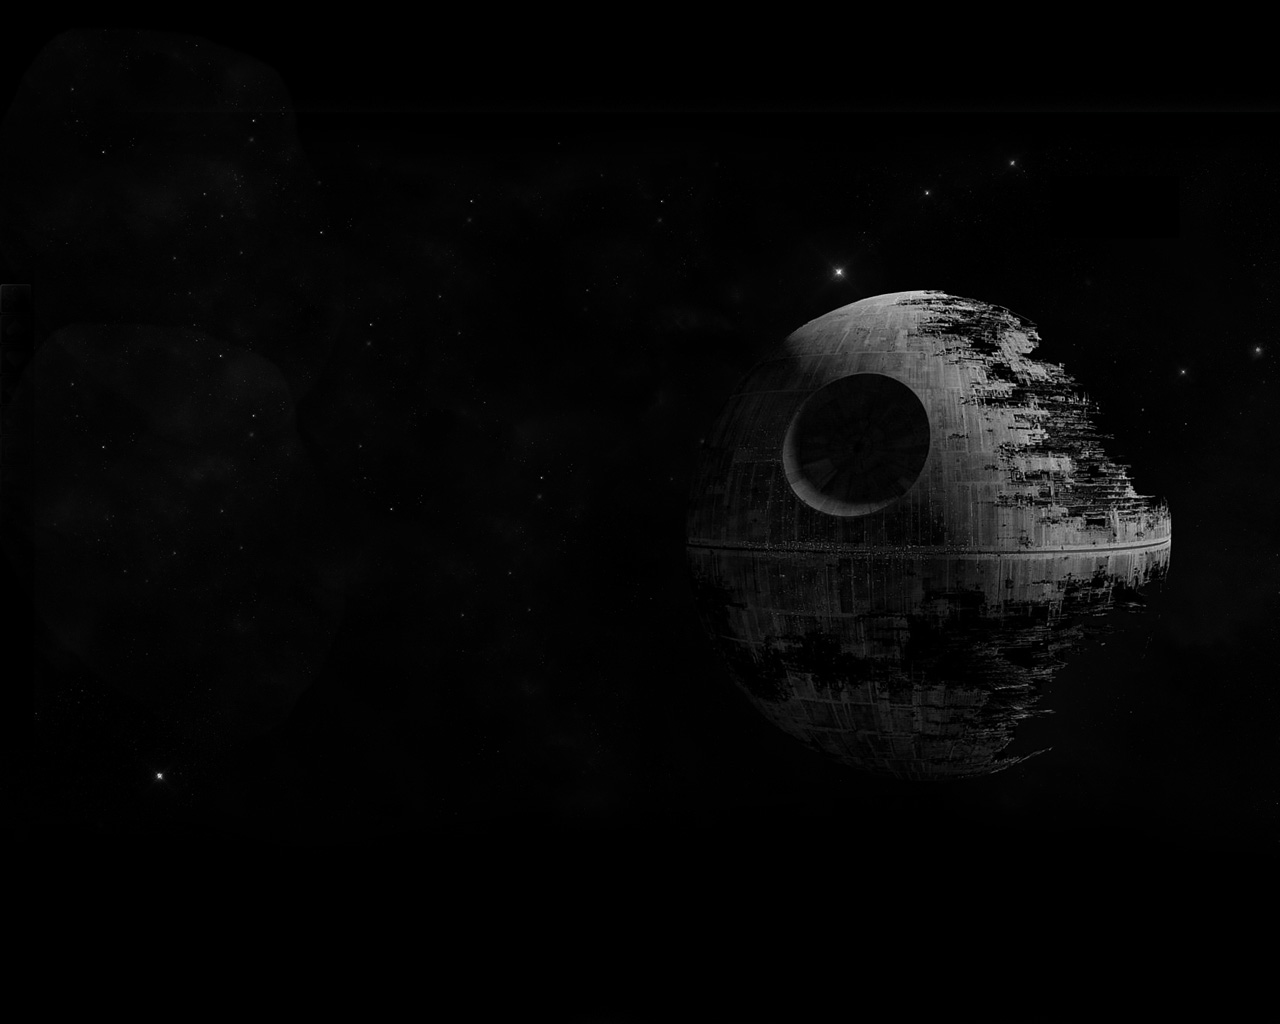 collection of cool desktop wallpaper pictures for Star Wars fans 1280x1024